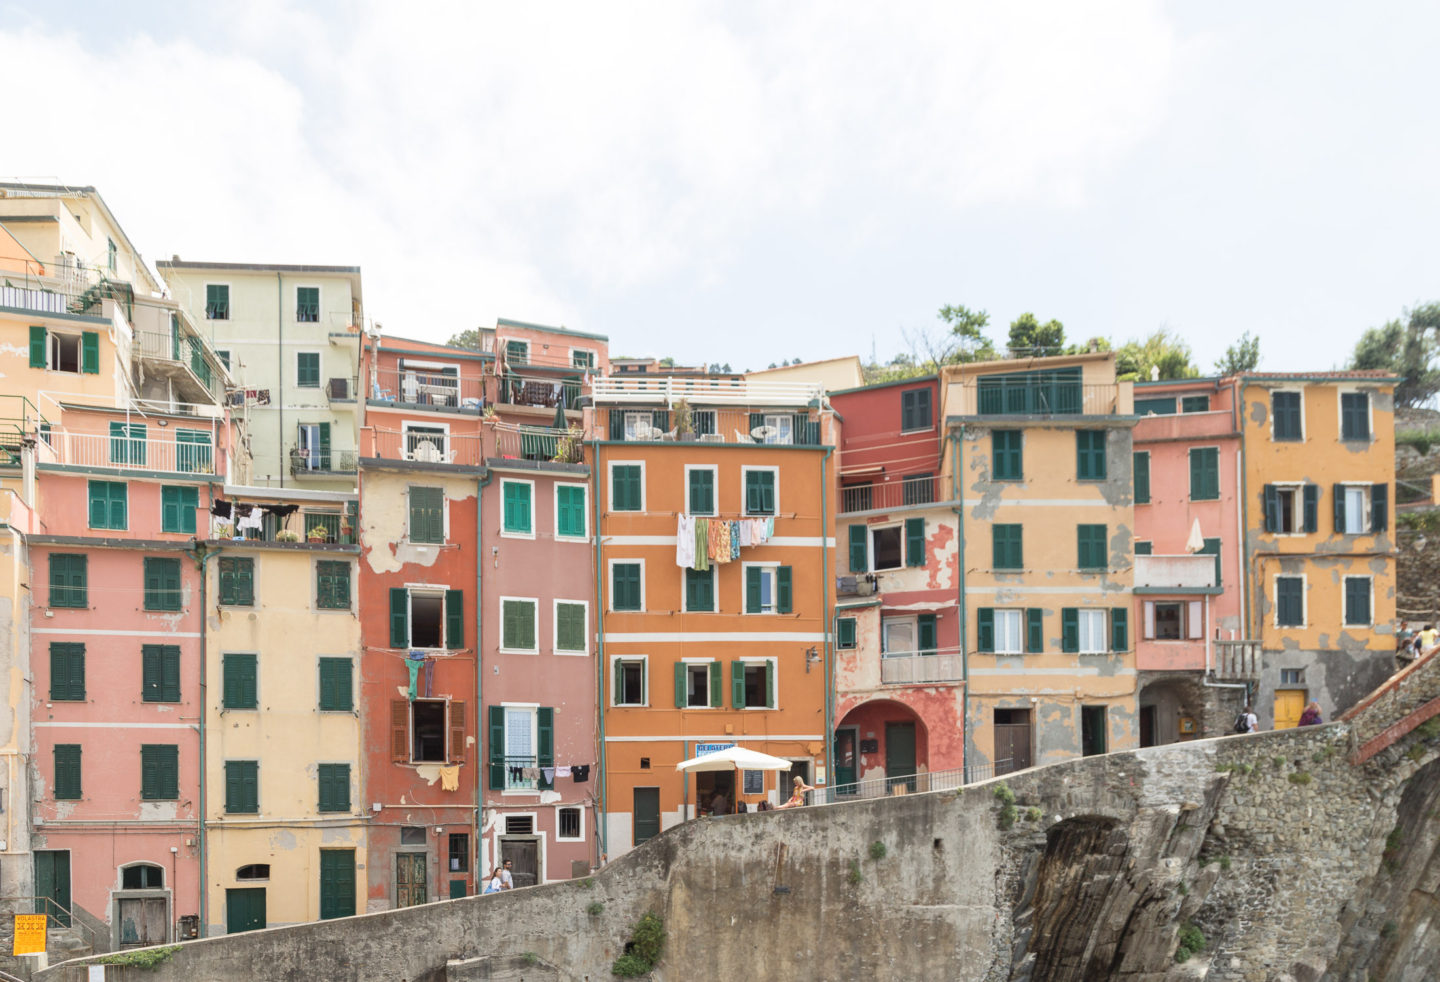 colorful buildings atop of a cliff -- most prominent color is orange